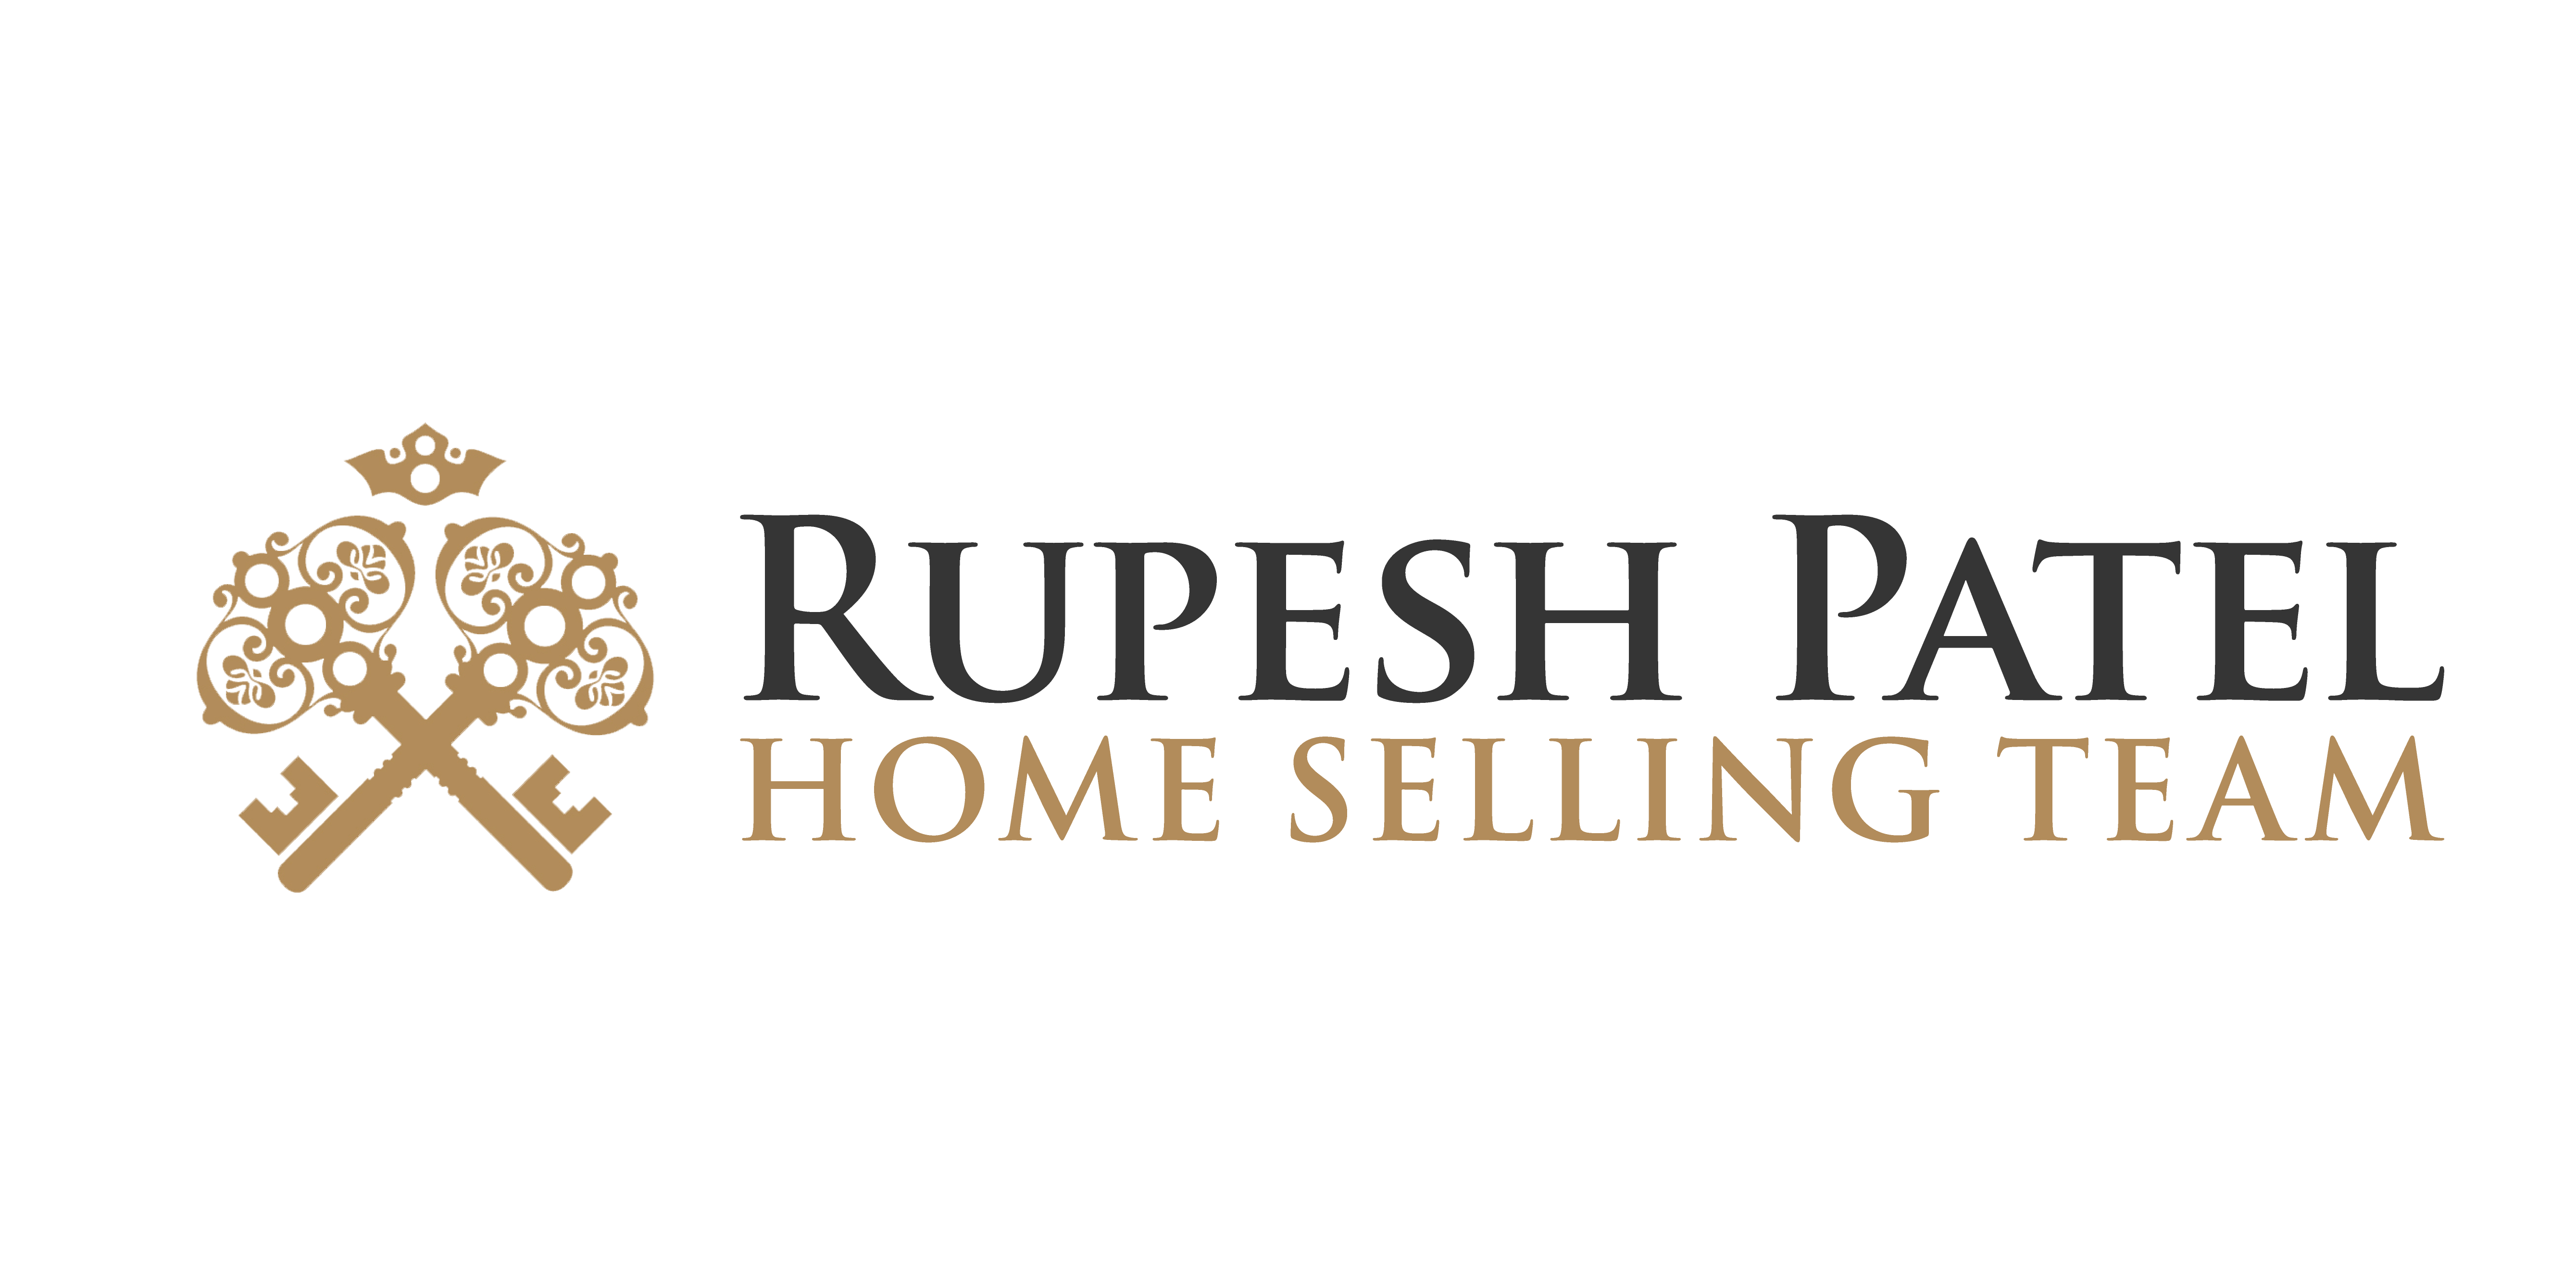 Rupesh Patel Home Selling Team logo